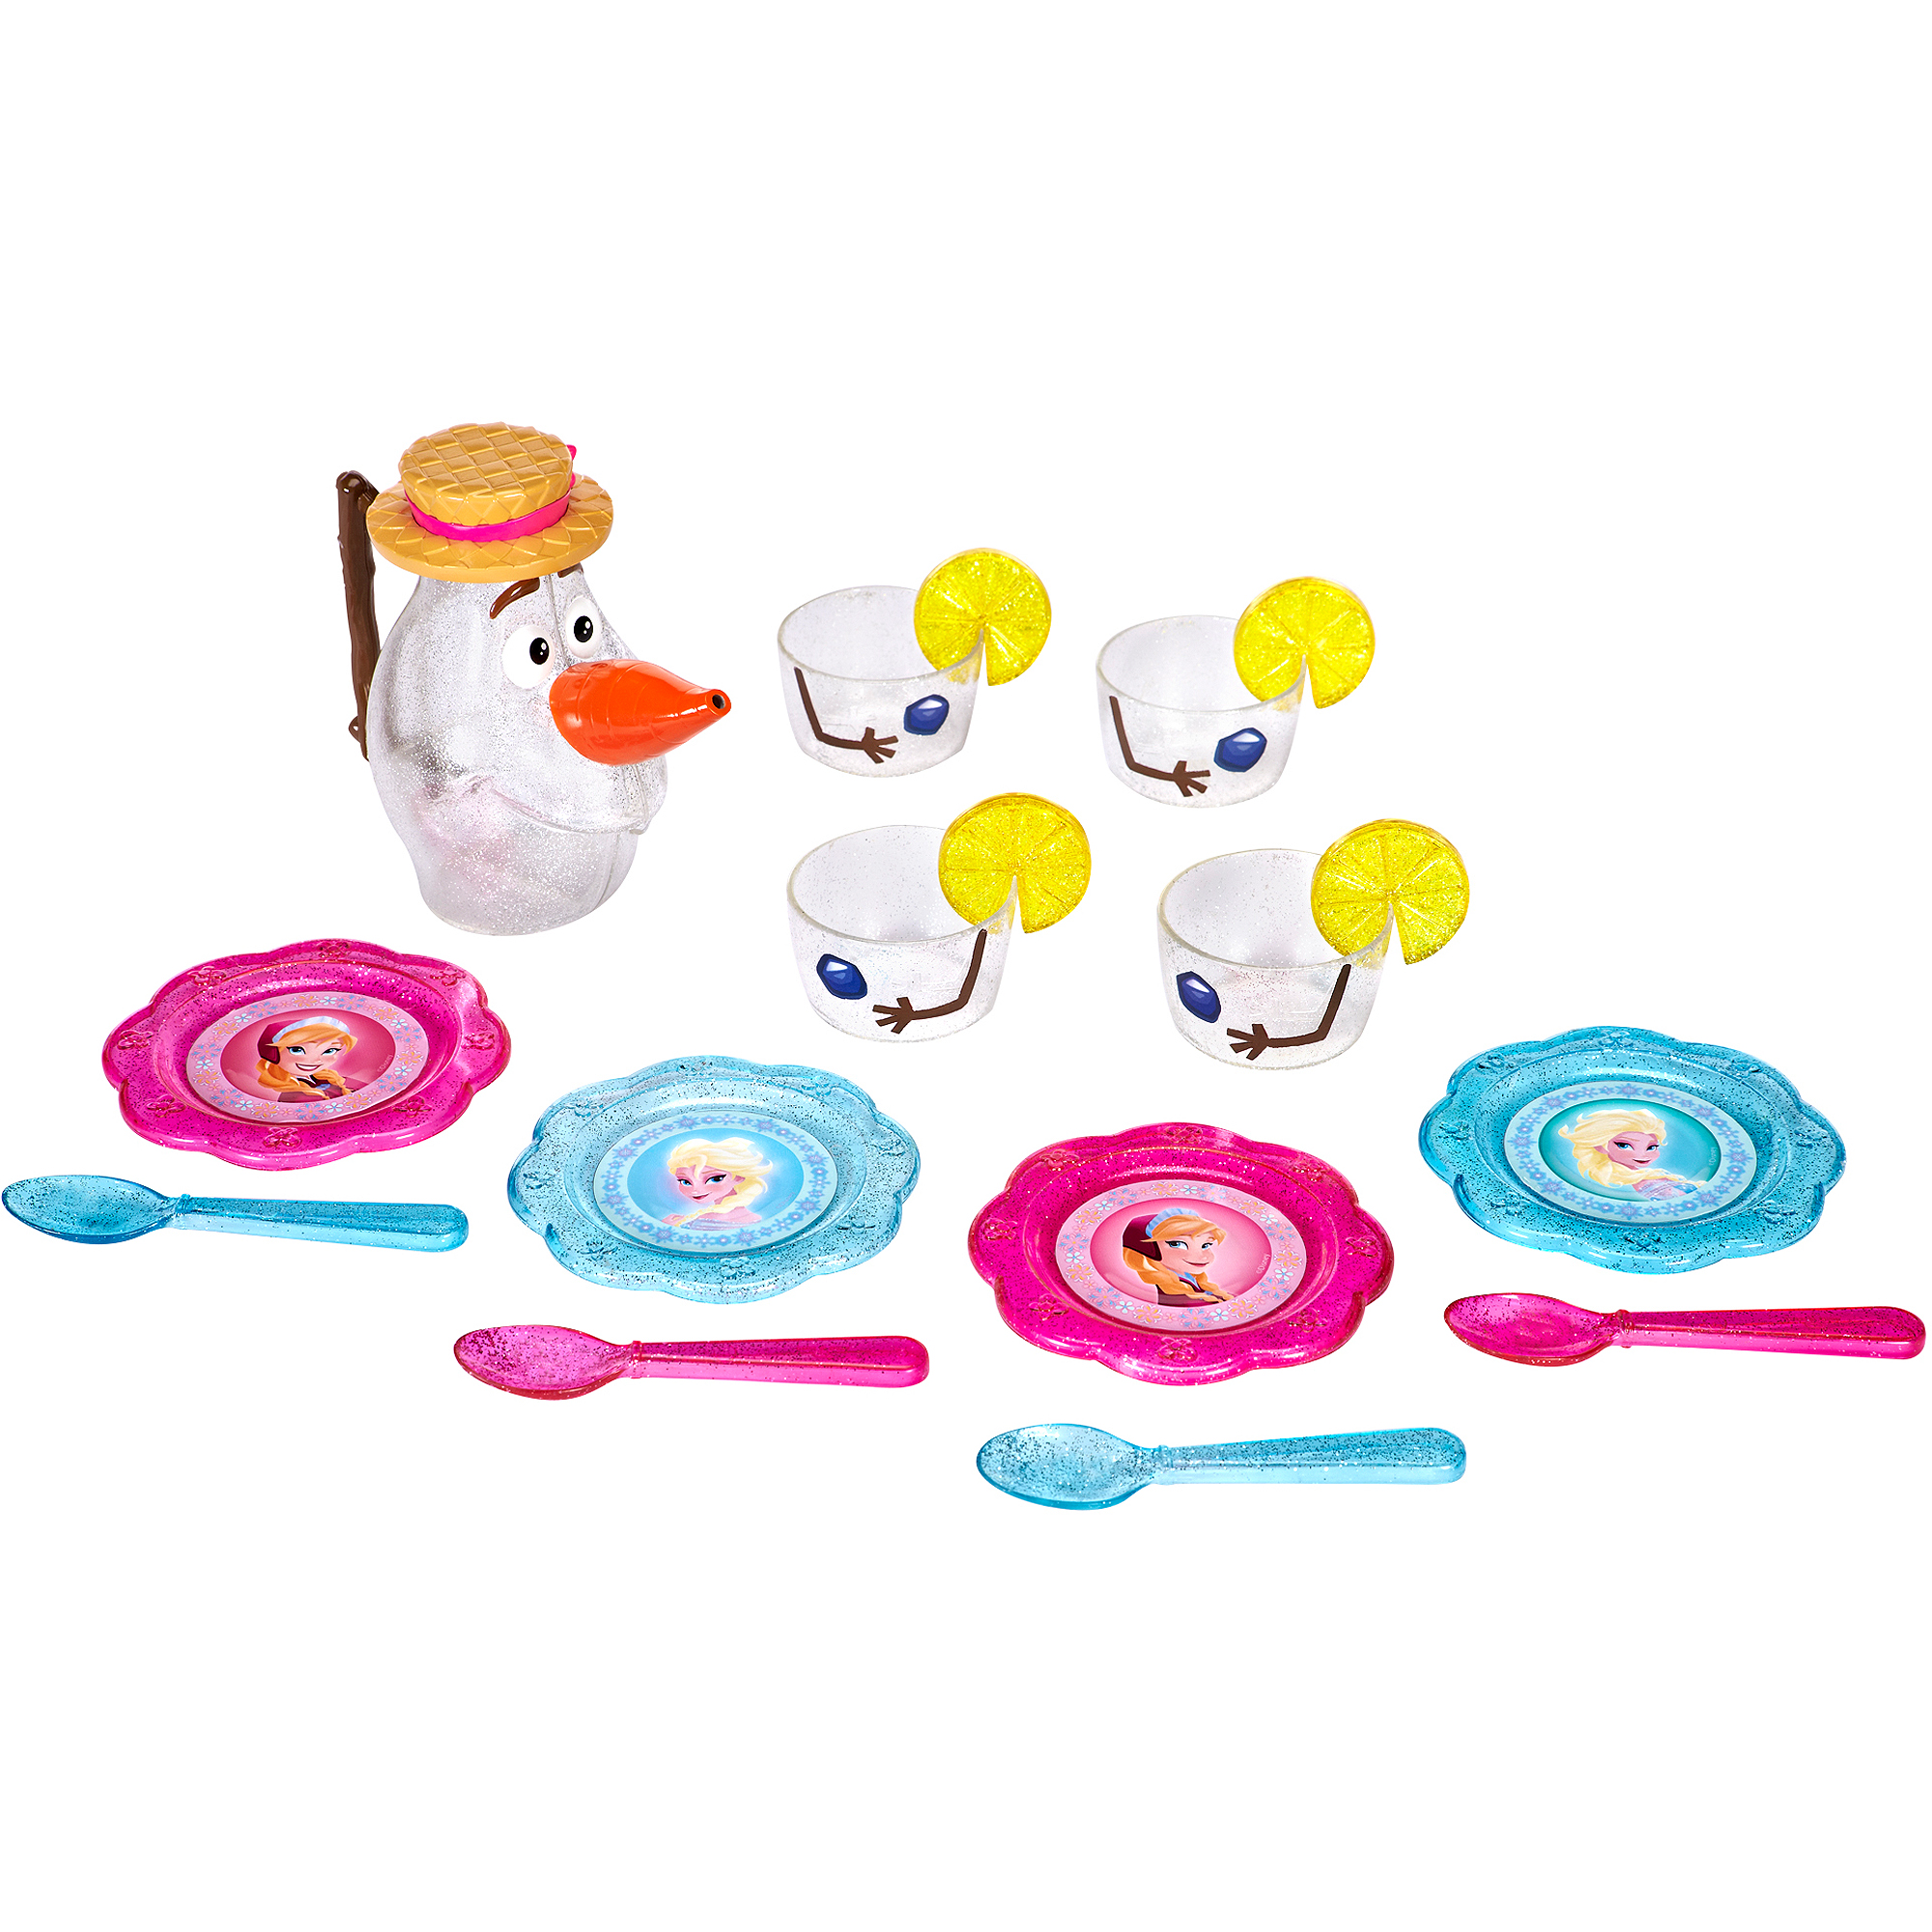 Disney Frozen Olaf Tea Set